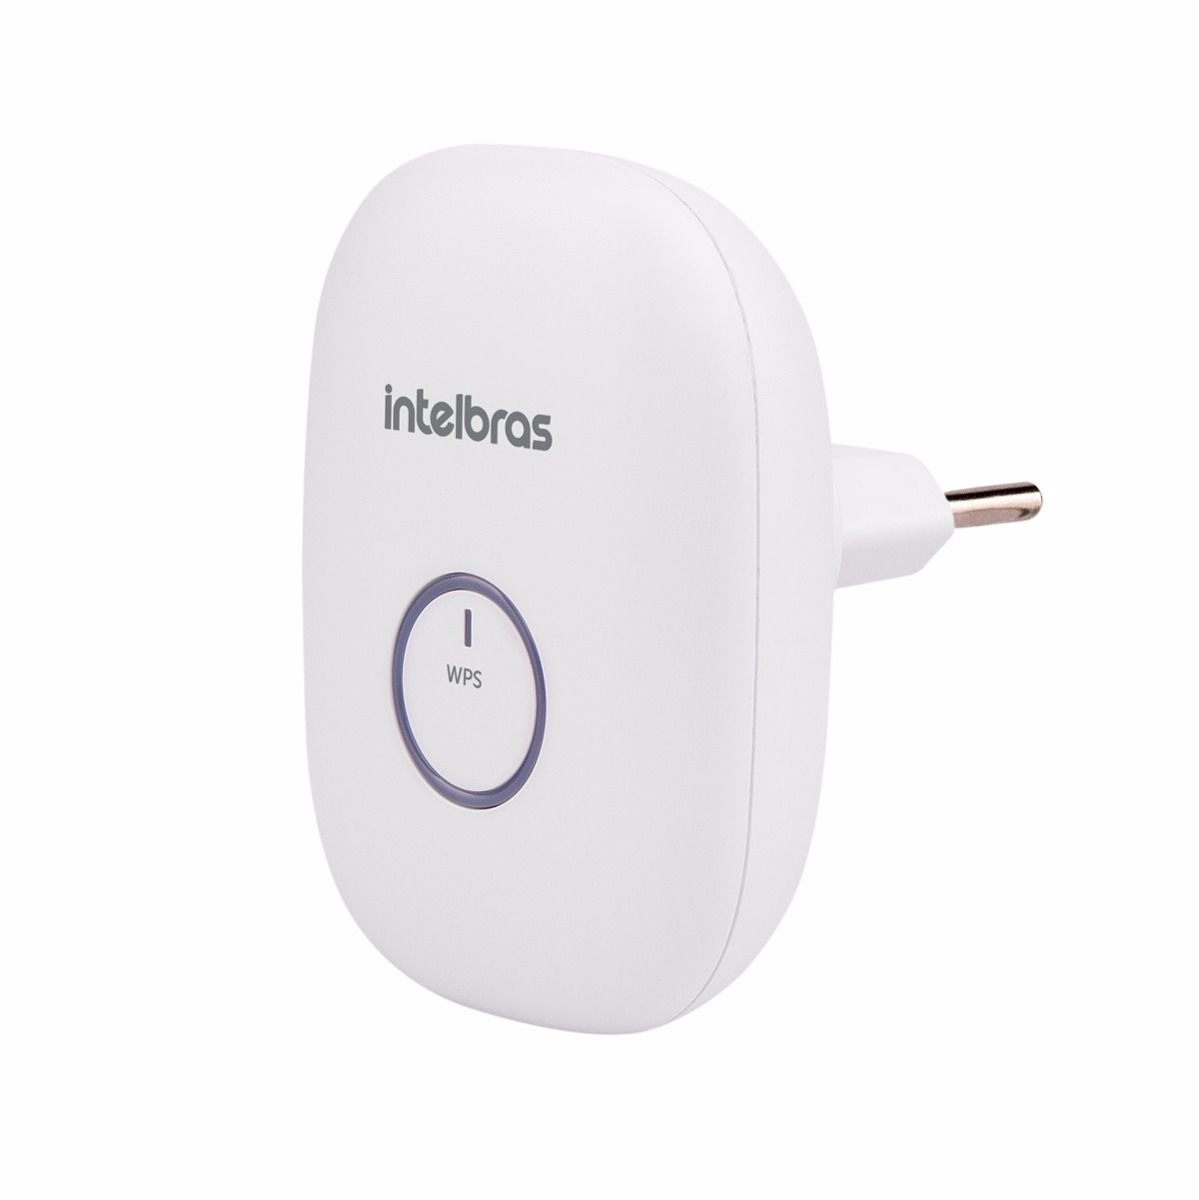 REPETIDOR WIRELESS N 300MBPS IWE 3000N INTELBRAS